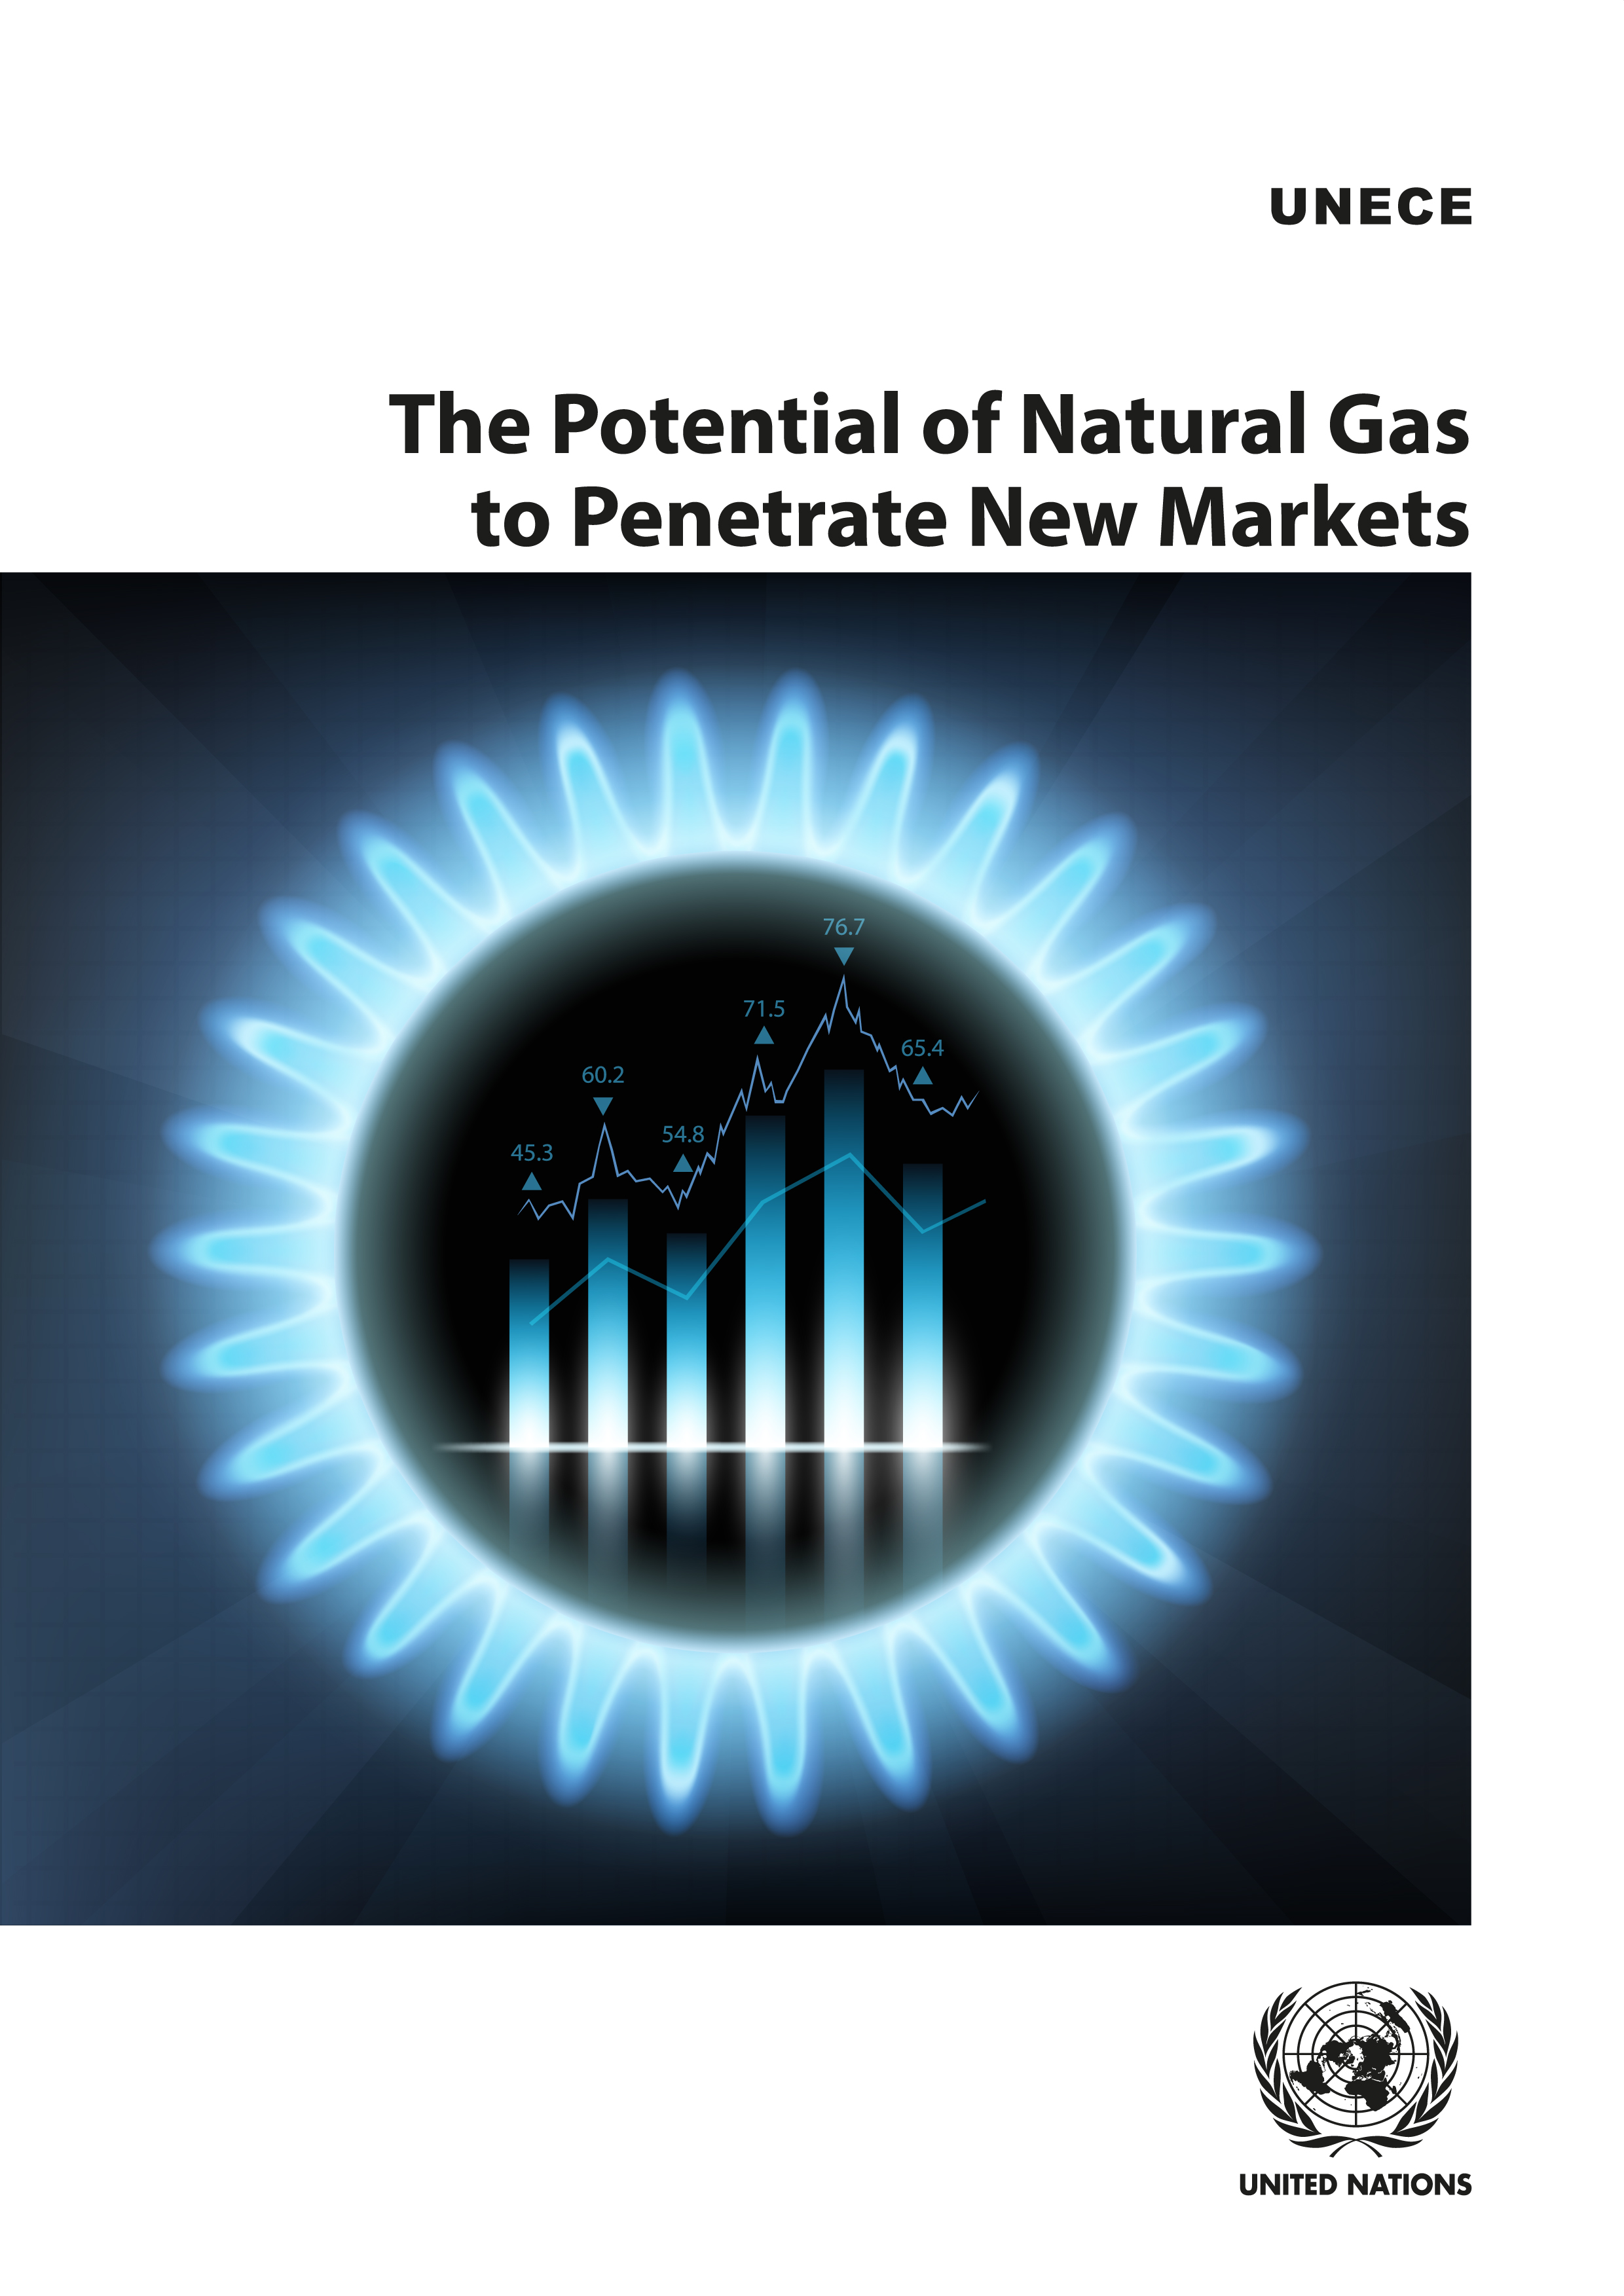 POTENTIAL OF NATURAL GAS PENETRATE